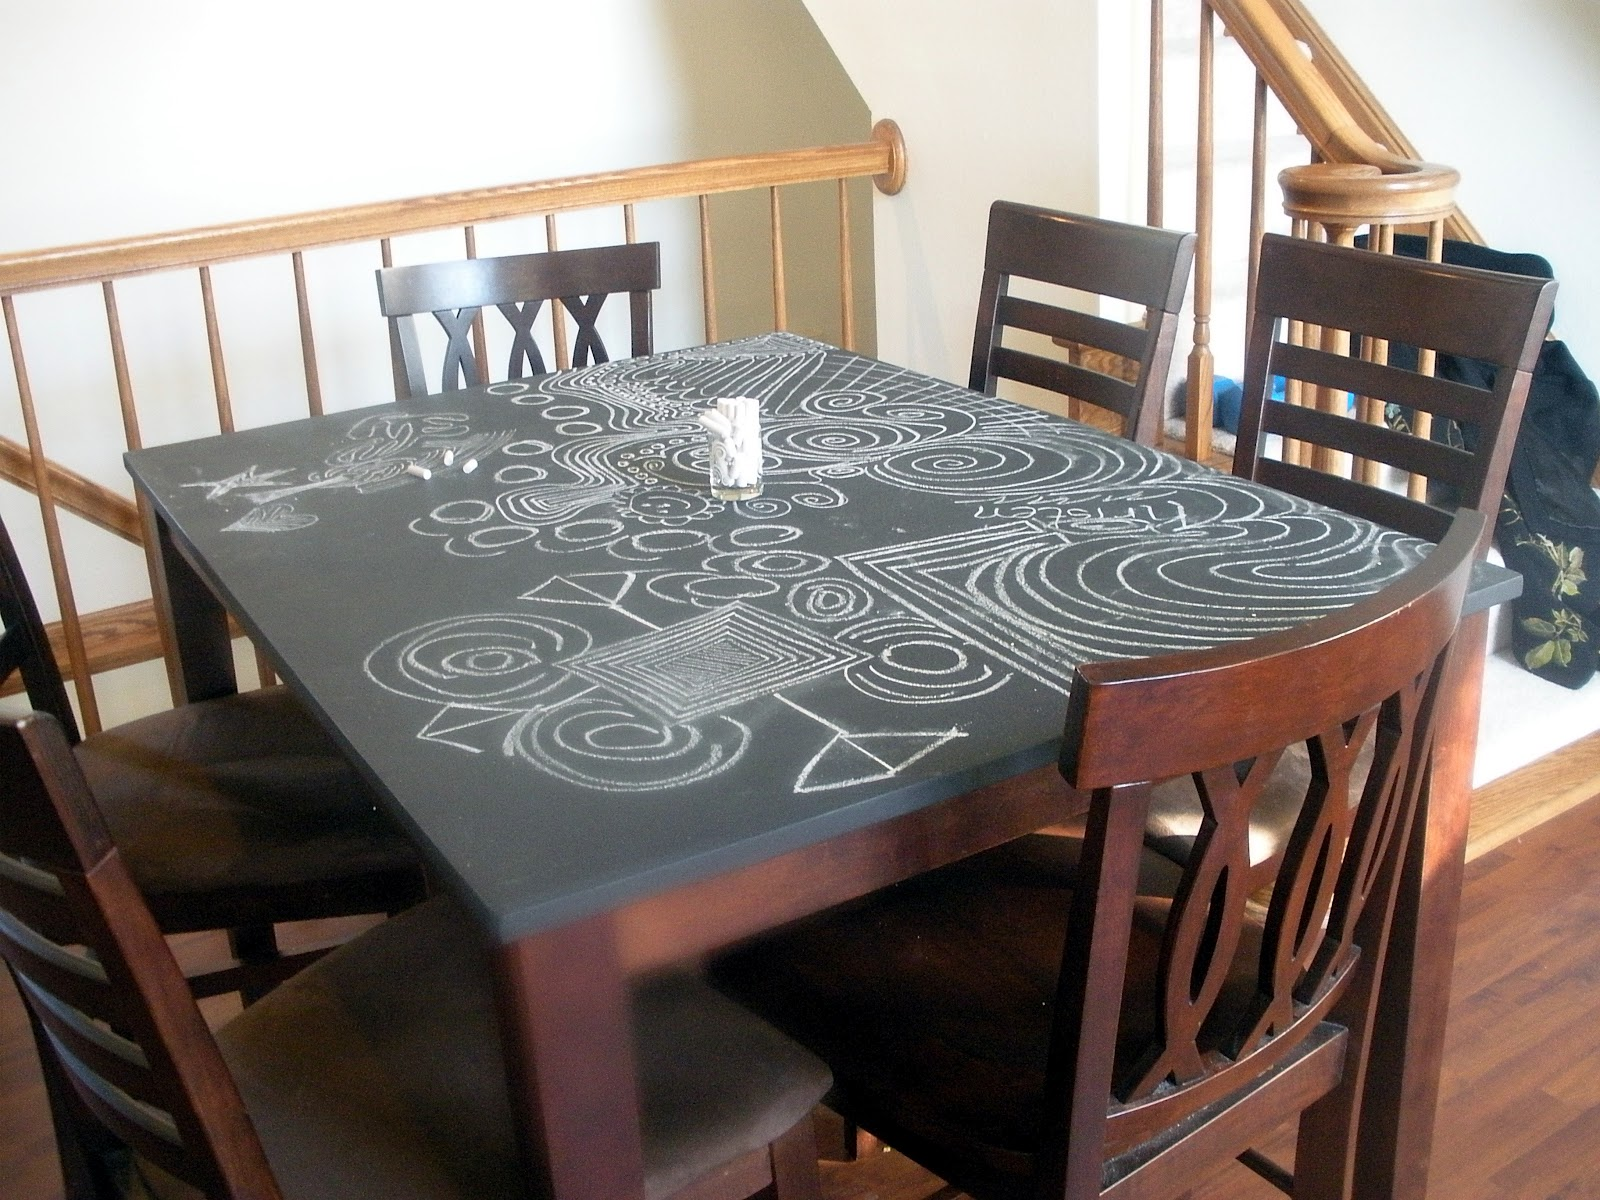 chalkboard table top. Black Bedroom Furniture Sets. Home Design Ideas